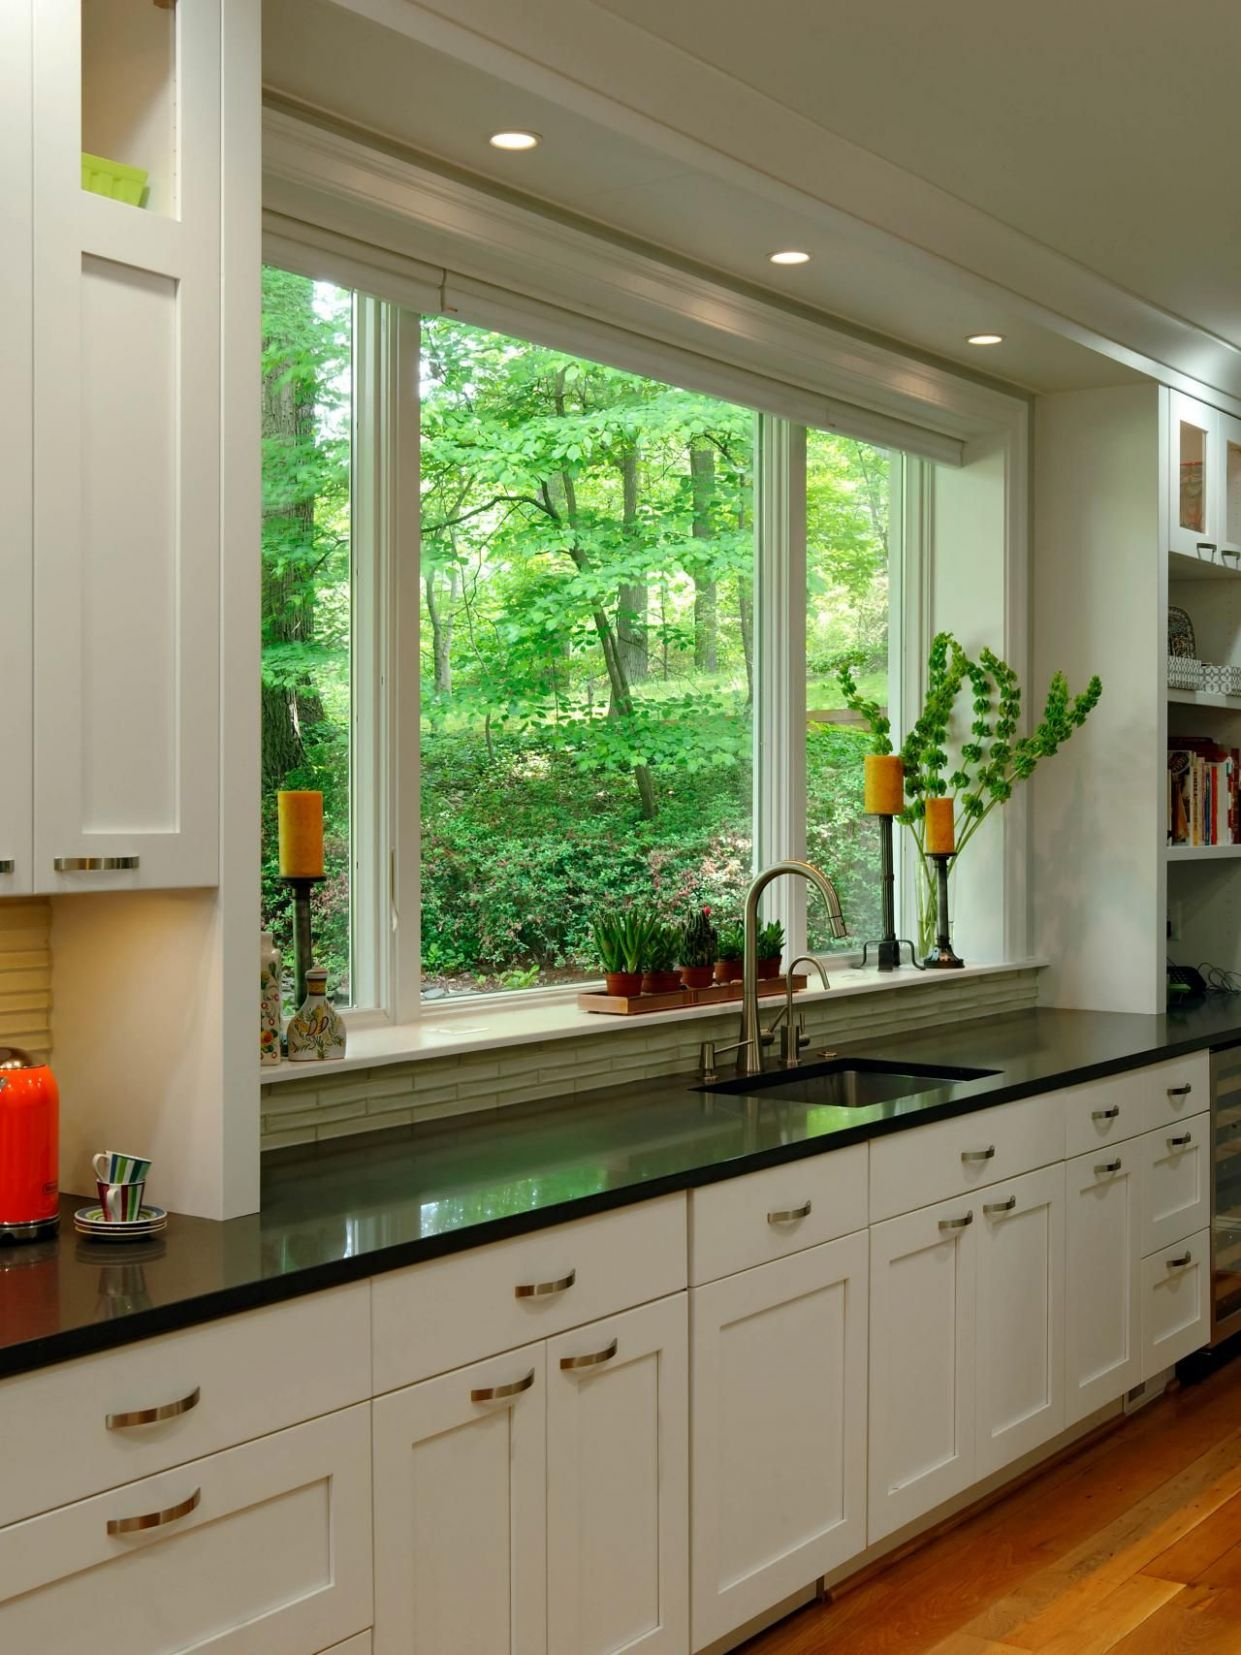 Kitchen Window Pictures: The Best Options, Styles & Ideas ..